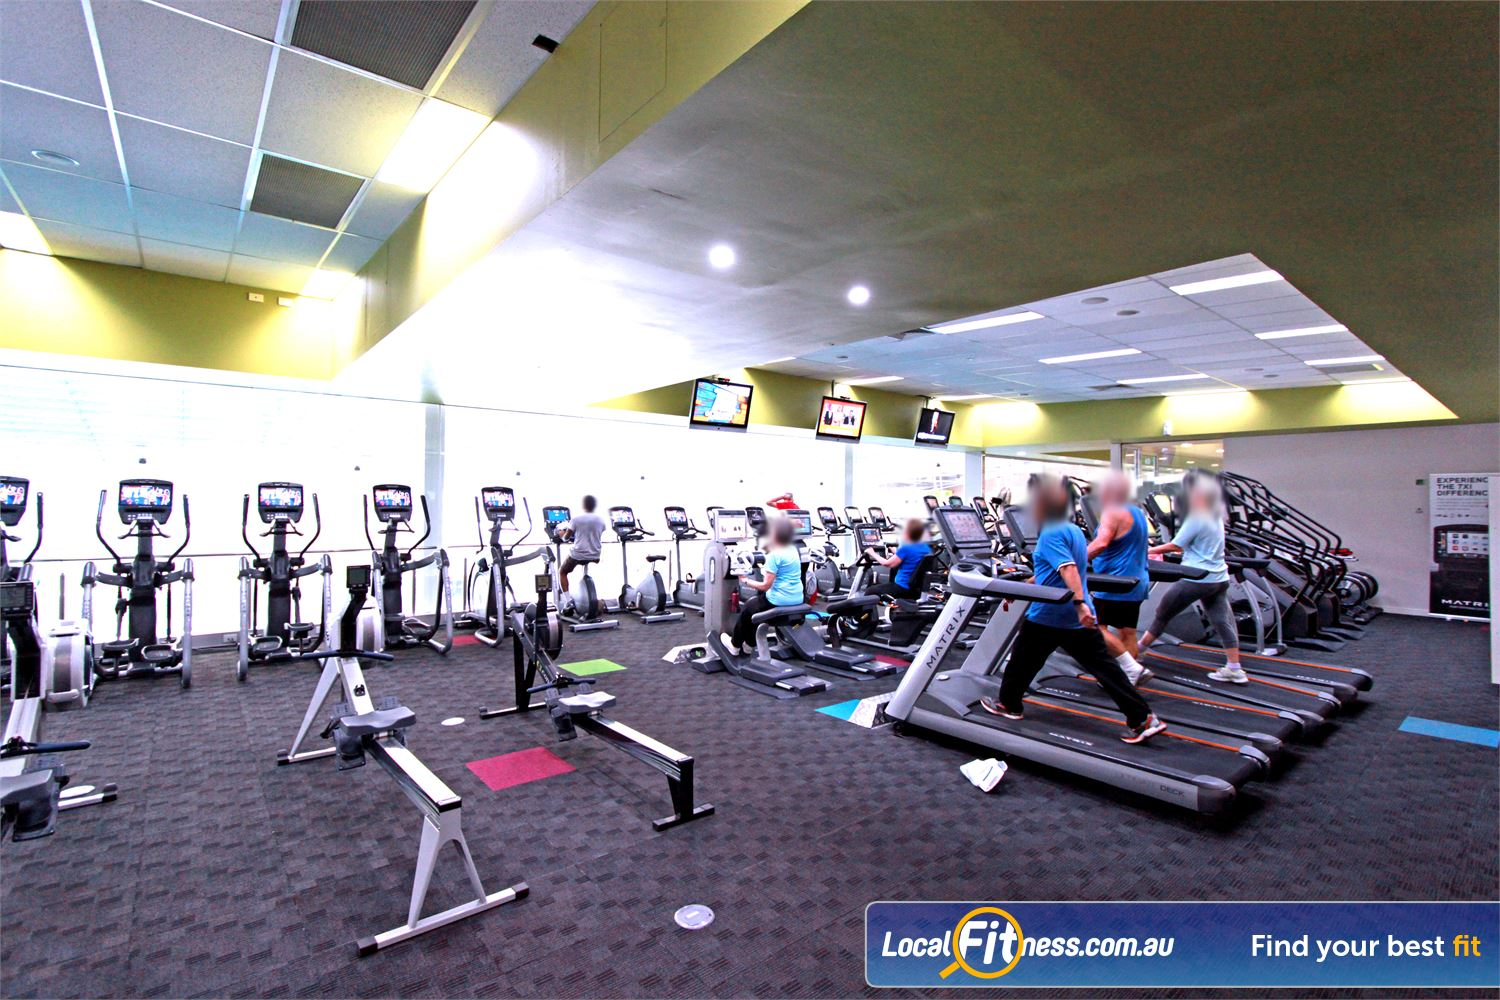 Casey Arc Near Berwick A fully equipped cardio area with treadmills, cross trainers, rowers and more.